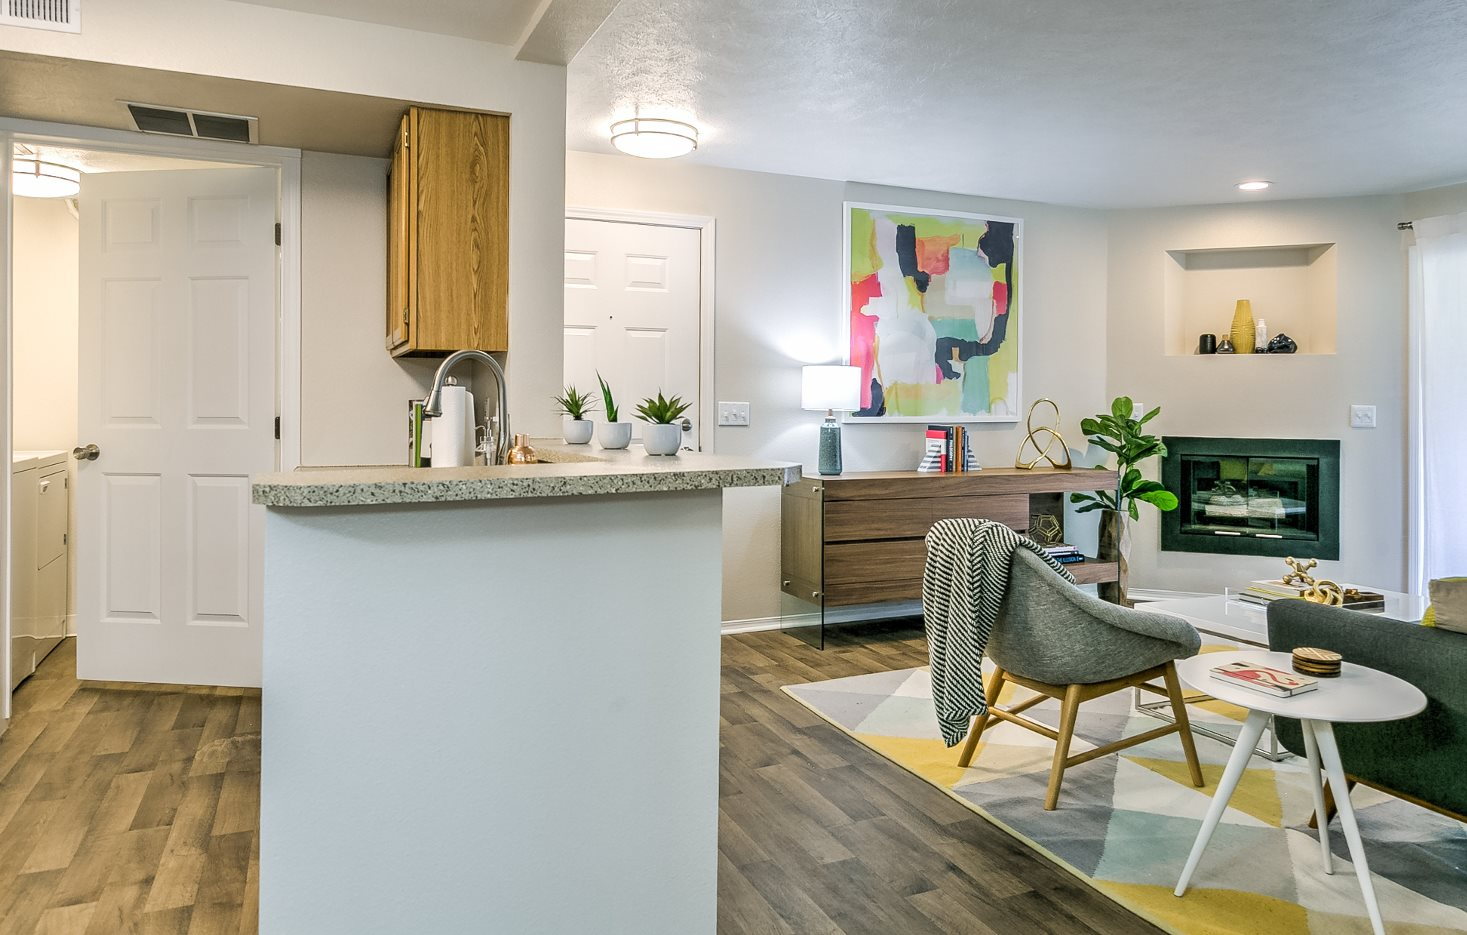 Rosewood apartments in boise id - 1 bedroom apartments boise idaho ...